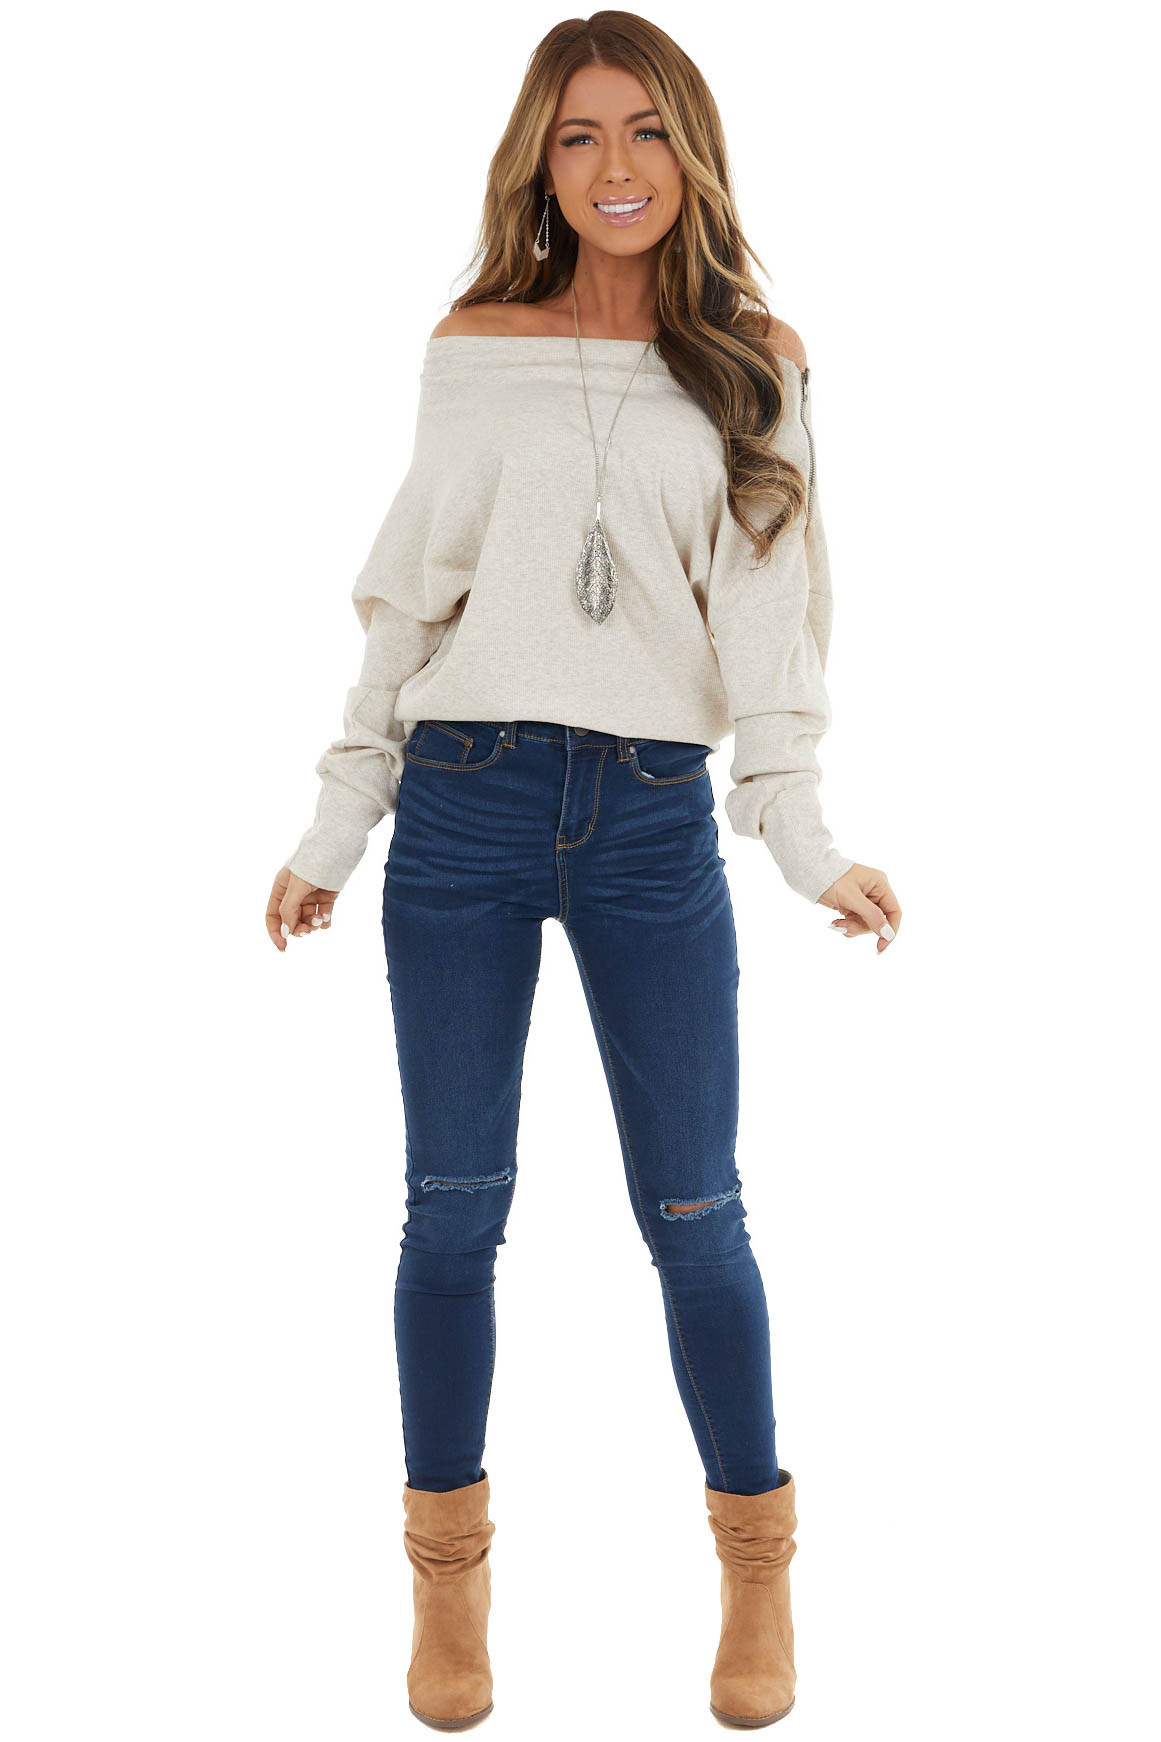 Oatmeal Off Shoulder Ribbed Knit Top with Zipper Detail